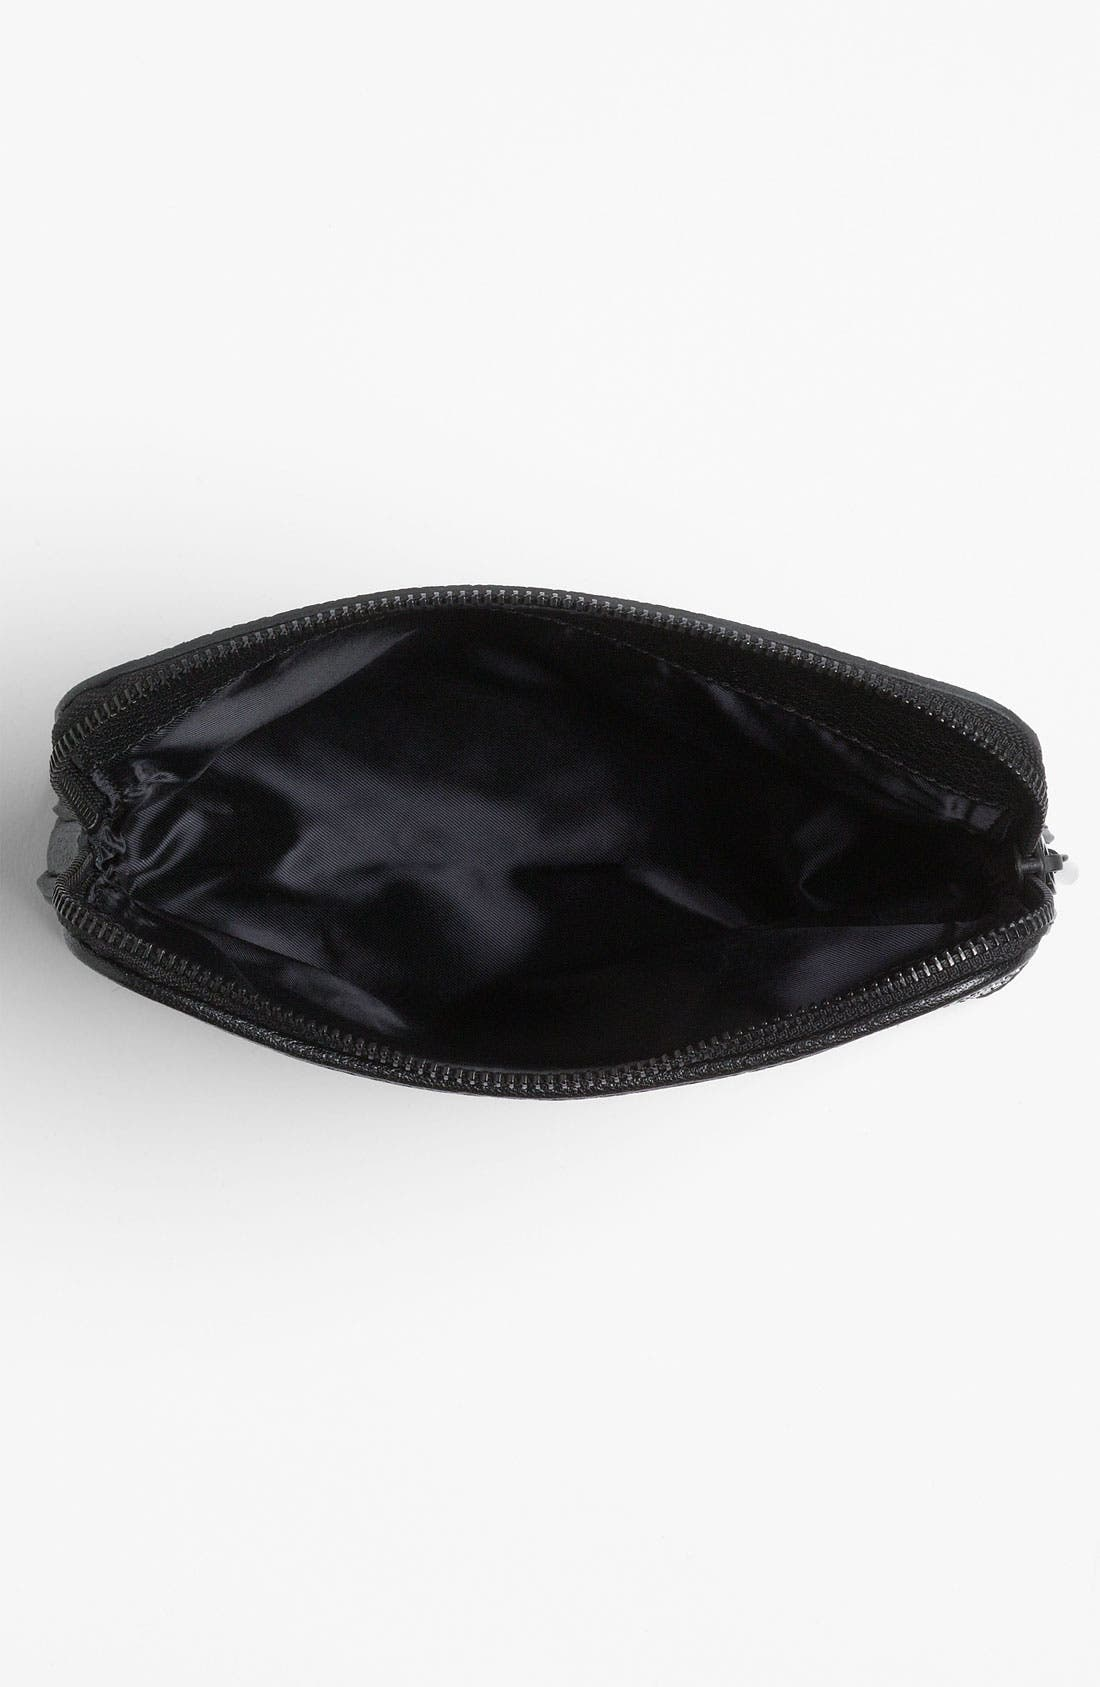 Alternate Image 3  - 3.1 Phillip Lim '31 Second' Leather Pouch